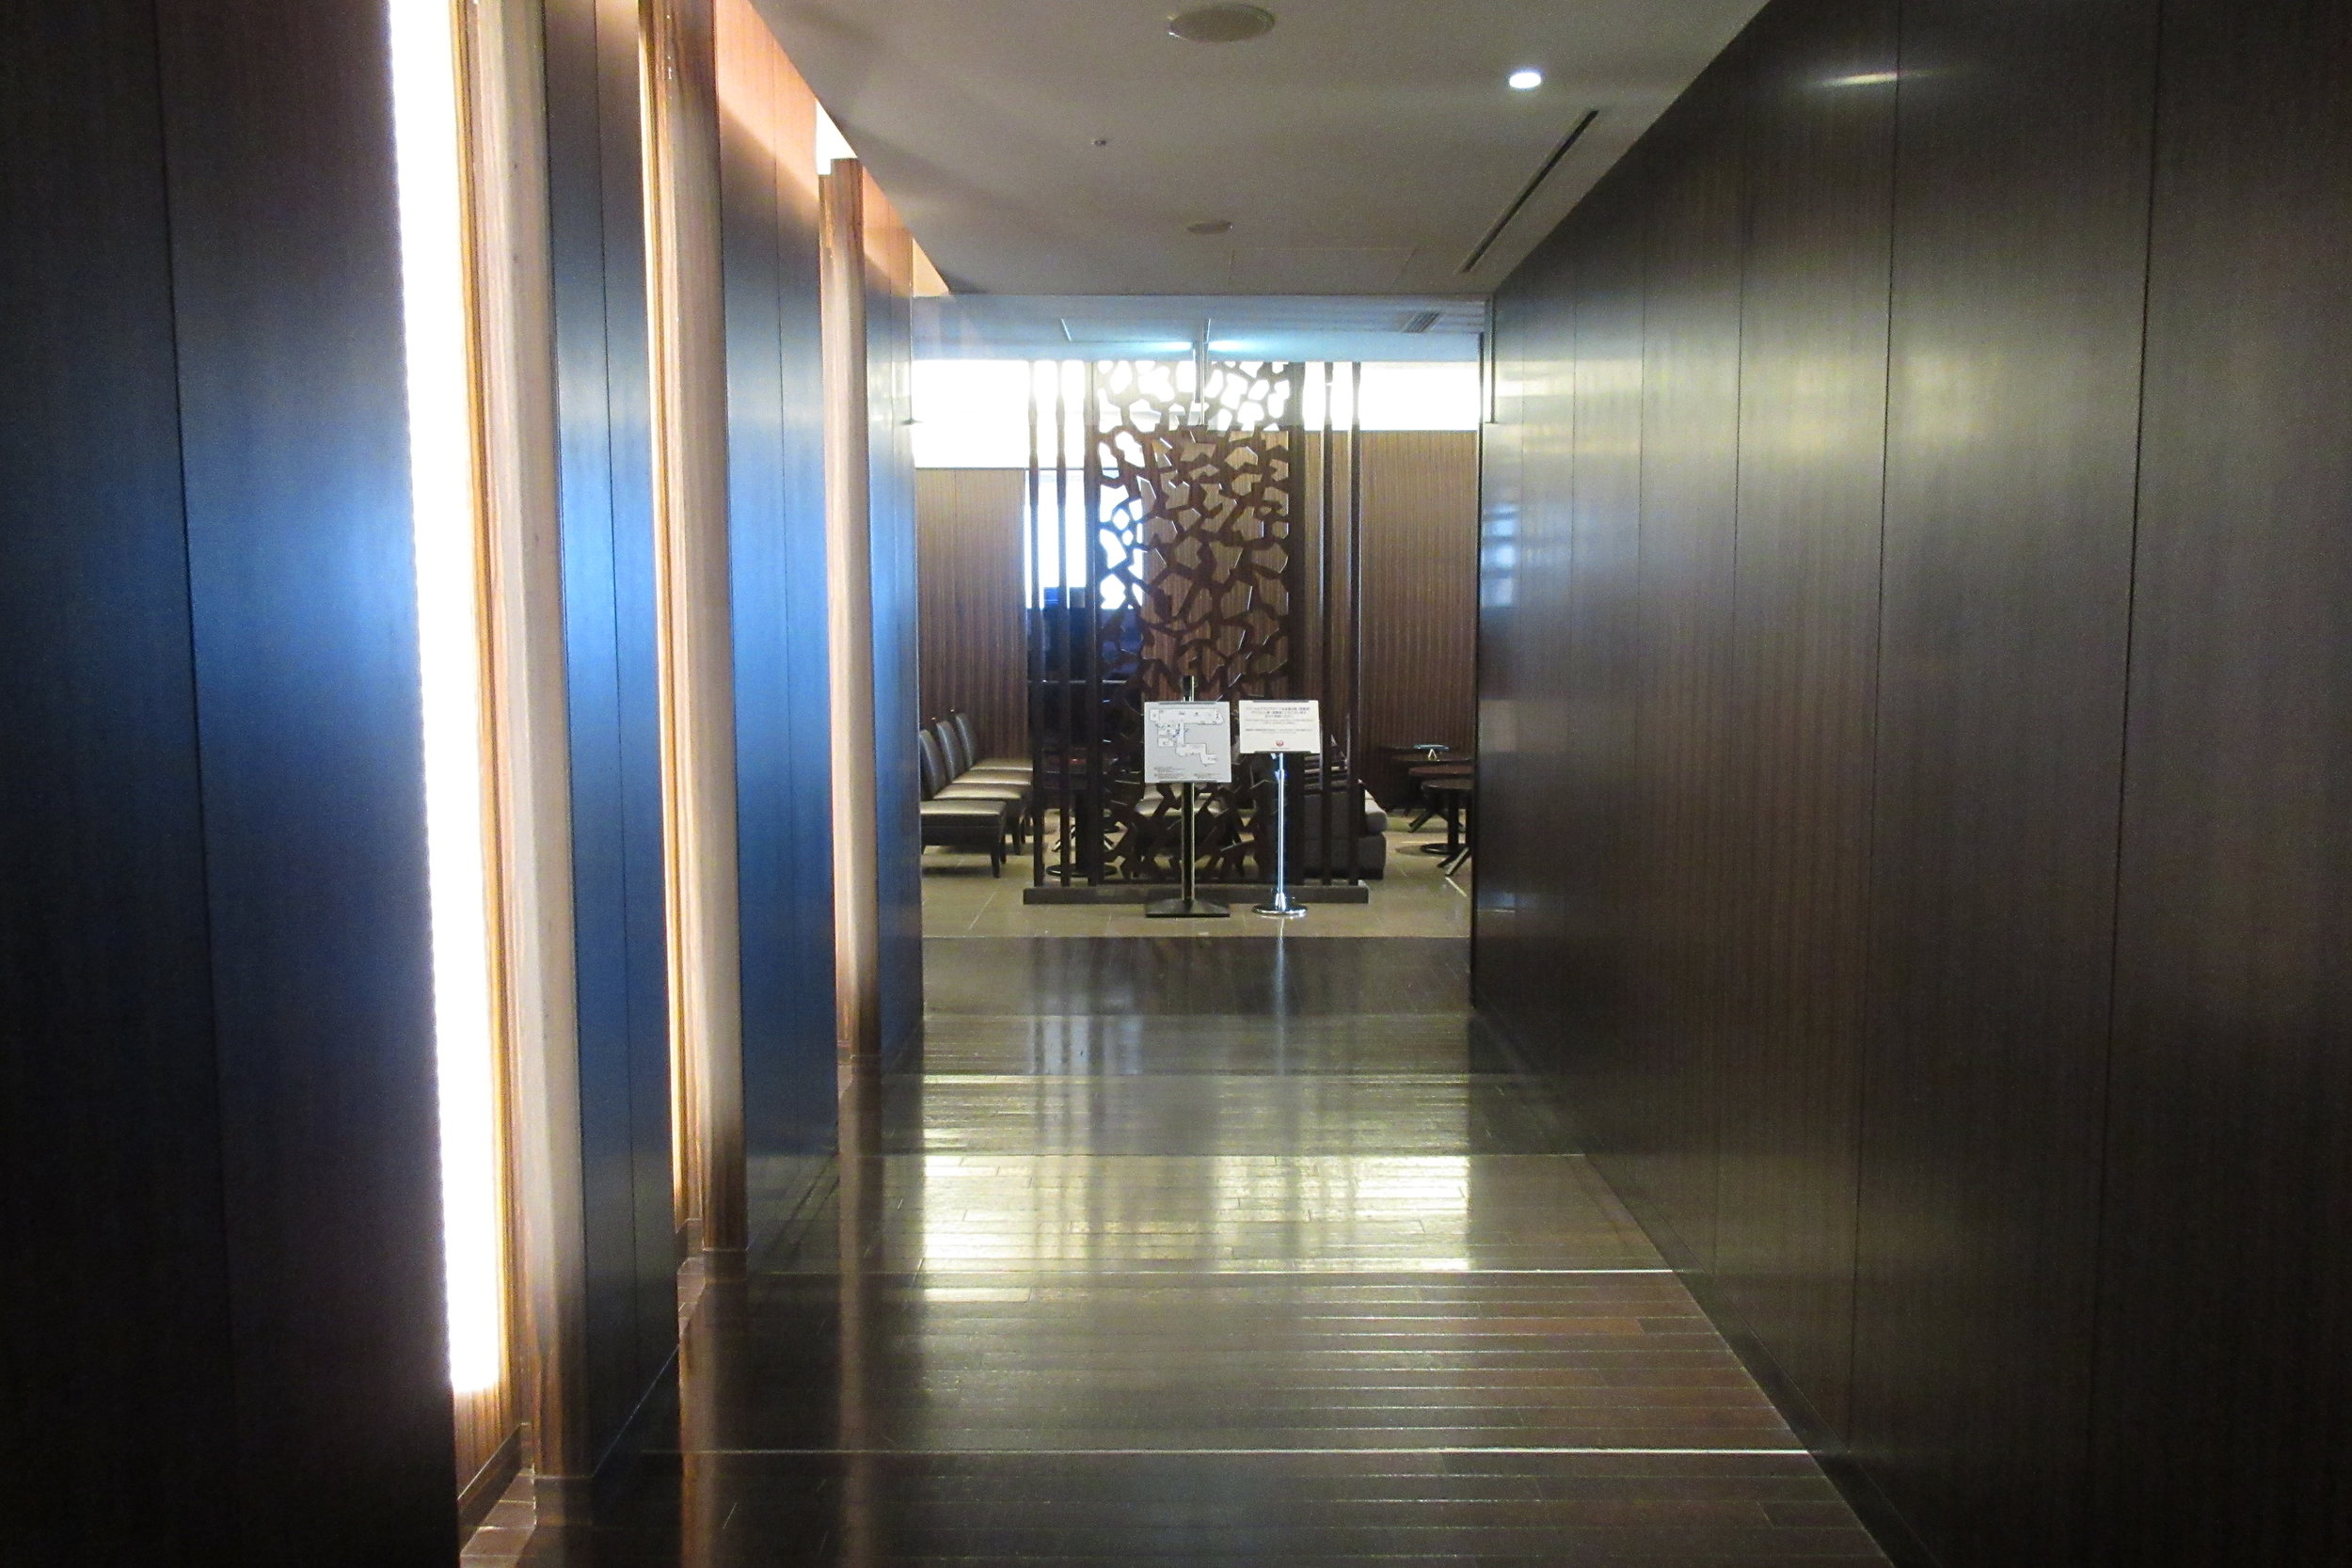 Japan Airlines First Class Lounge Tokyo Narita – Hallway